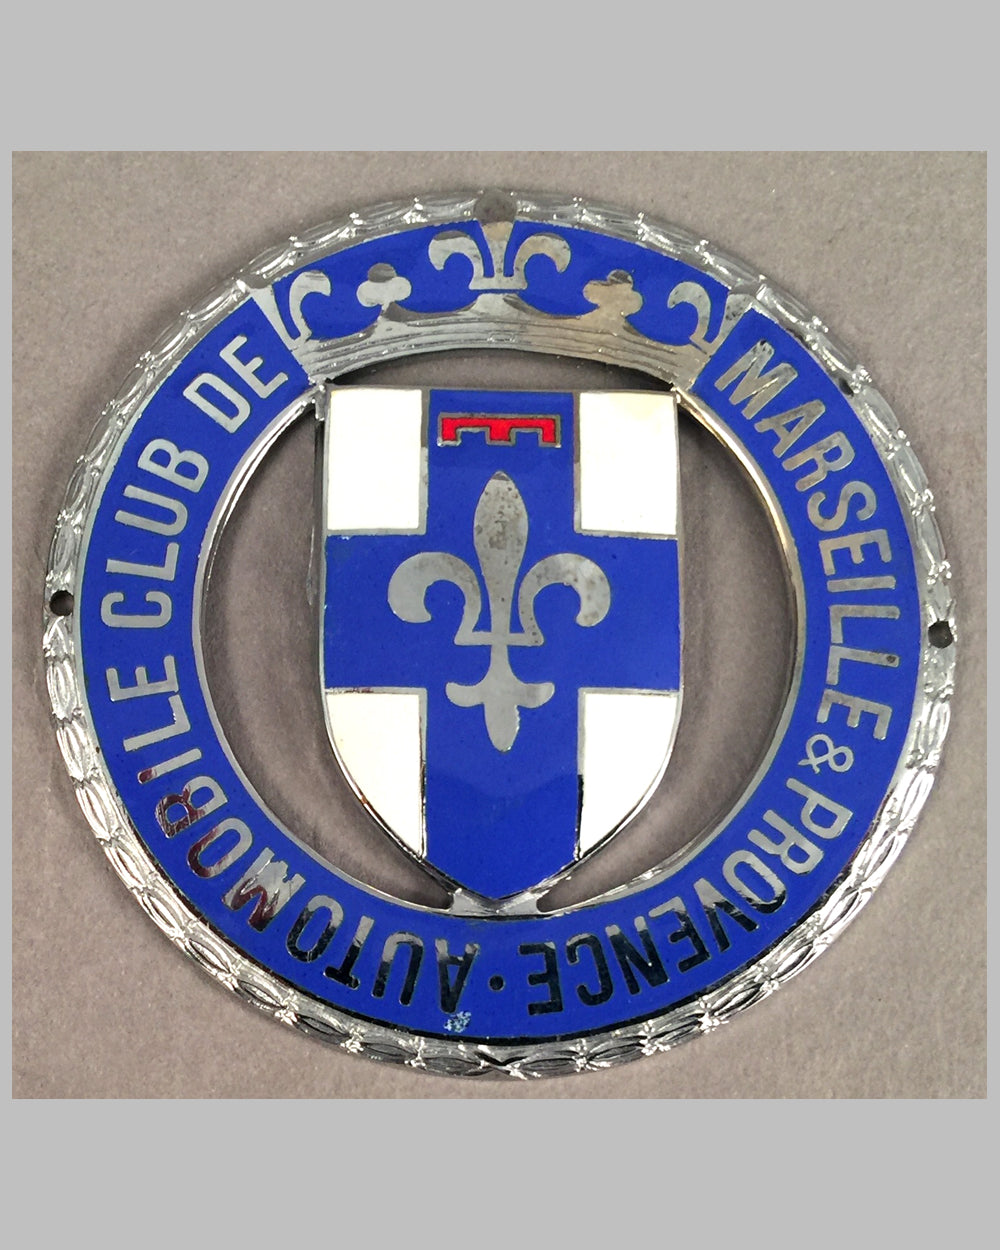 Automobile club de Marseille & Provence badge